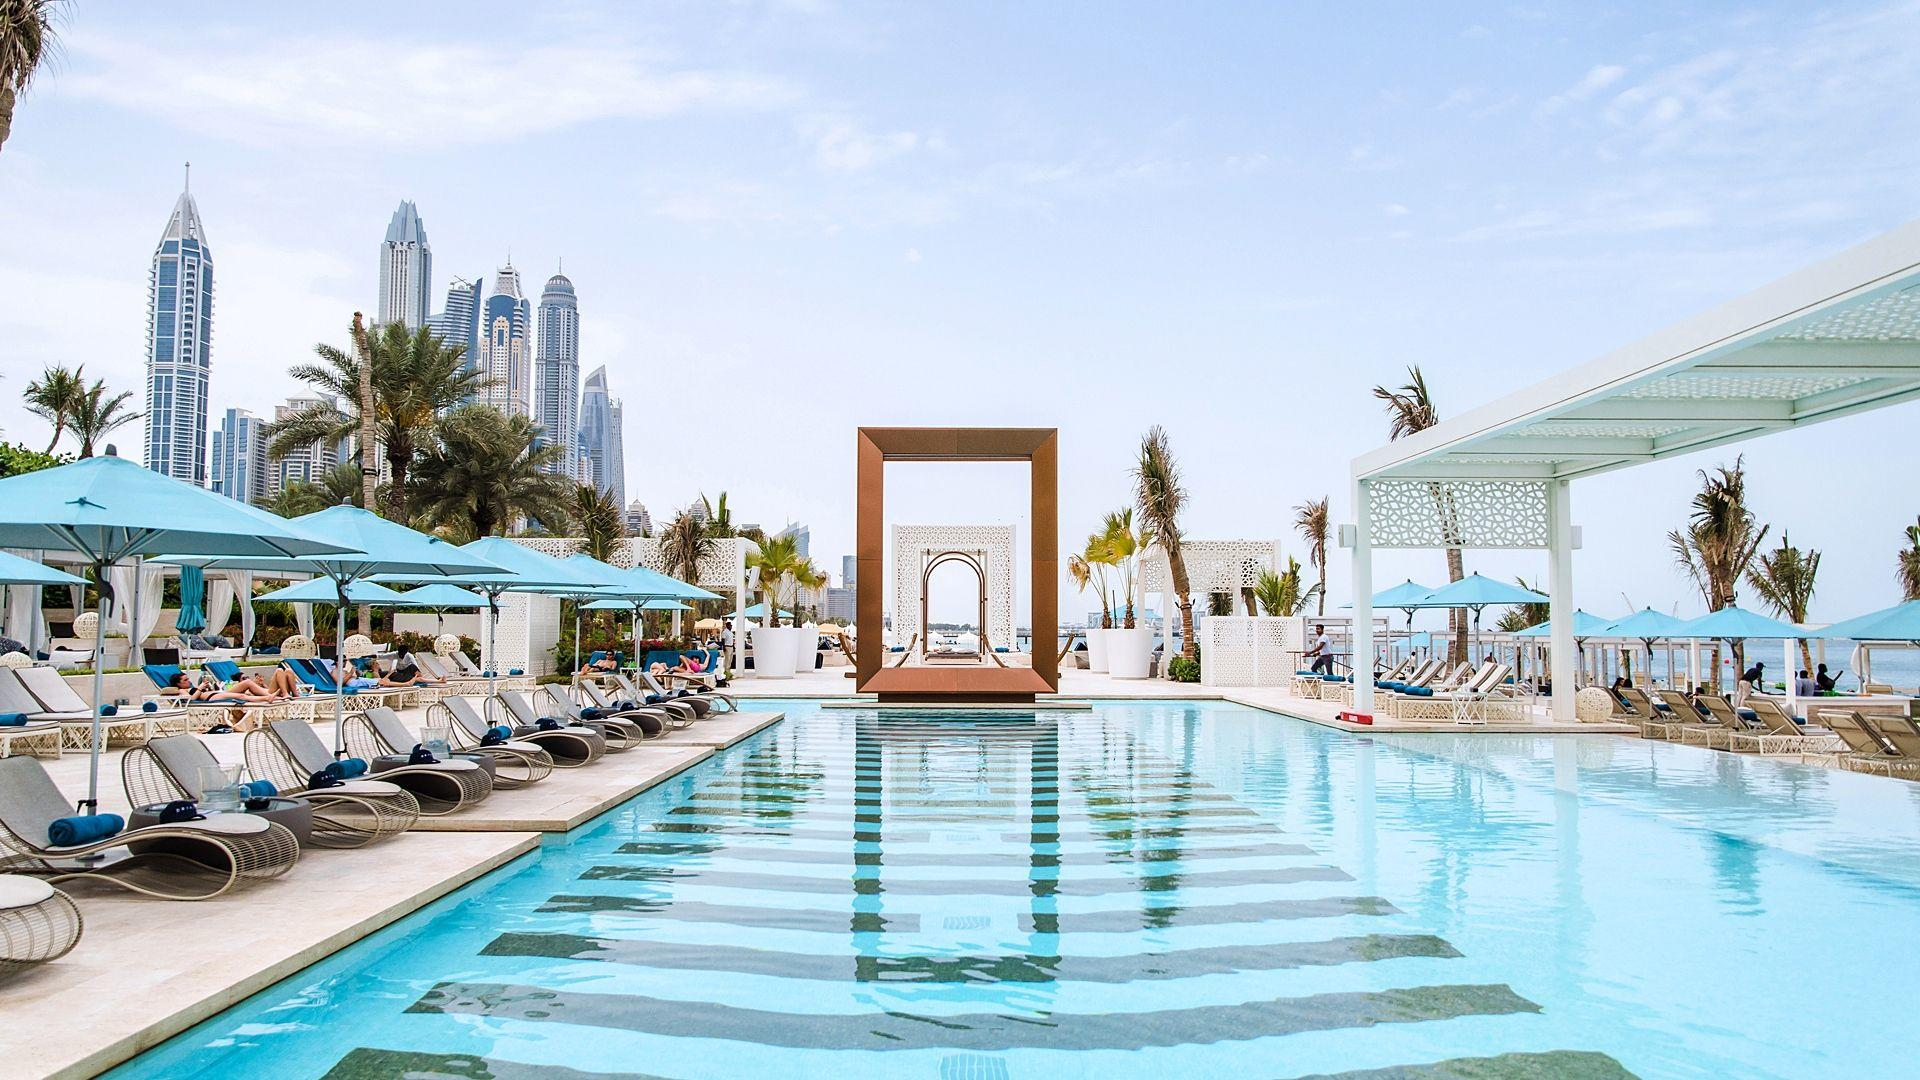 The Escape | Drift Beach, One&Only Royal Mirage, Dubai